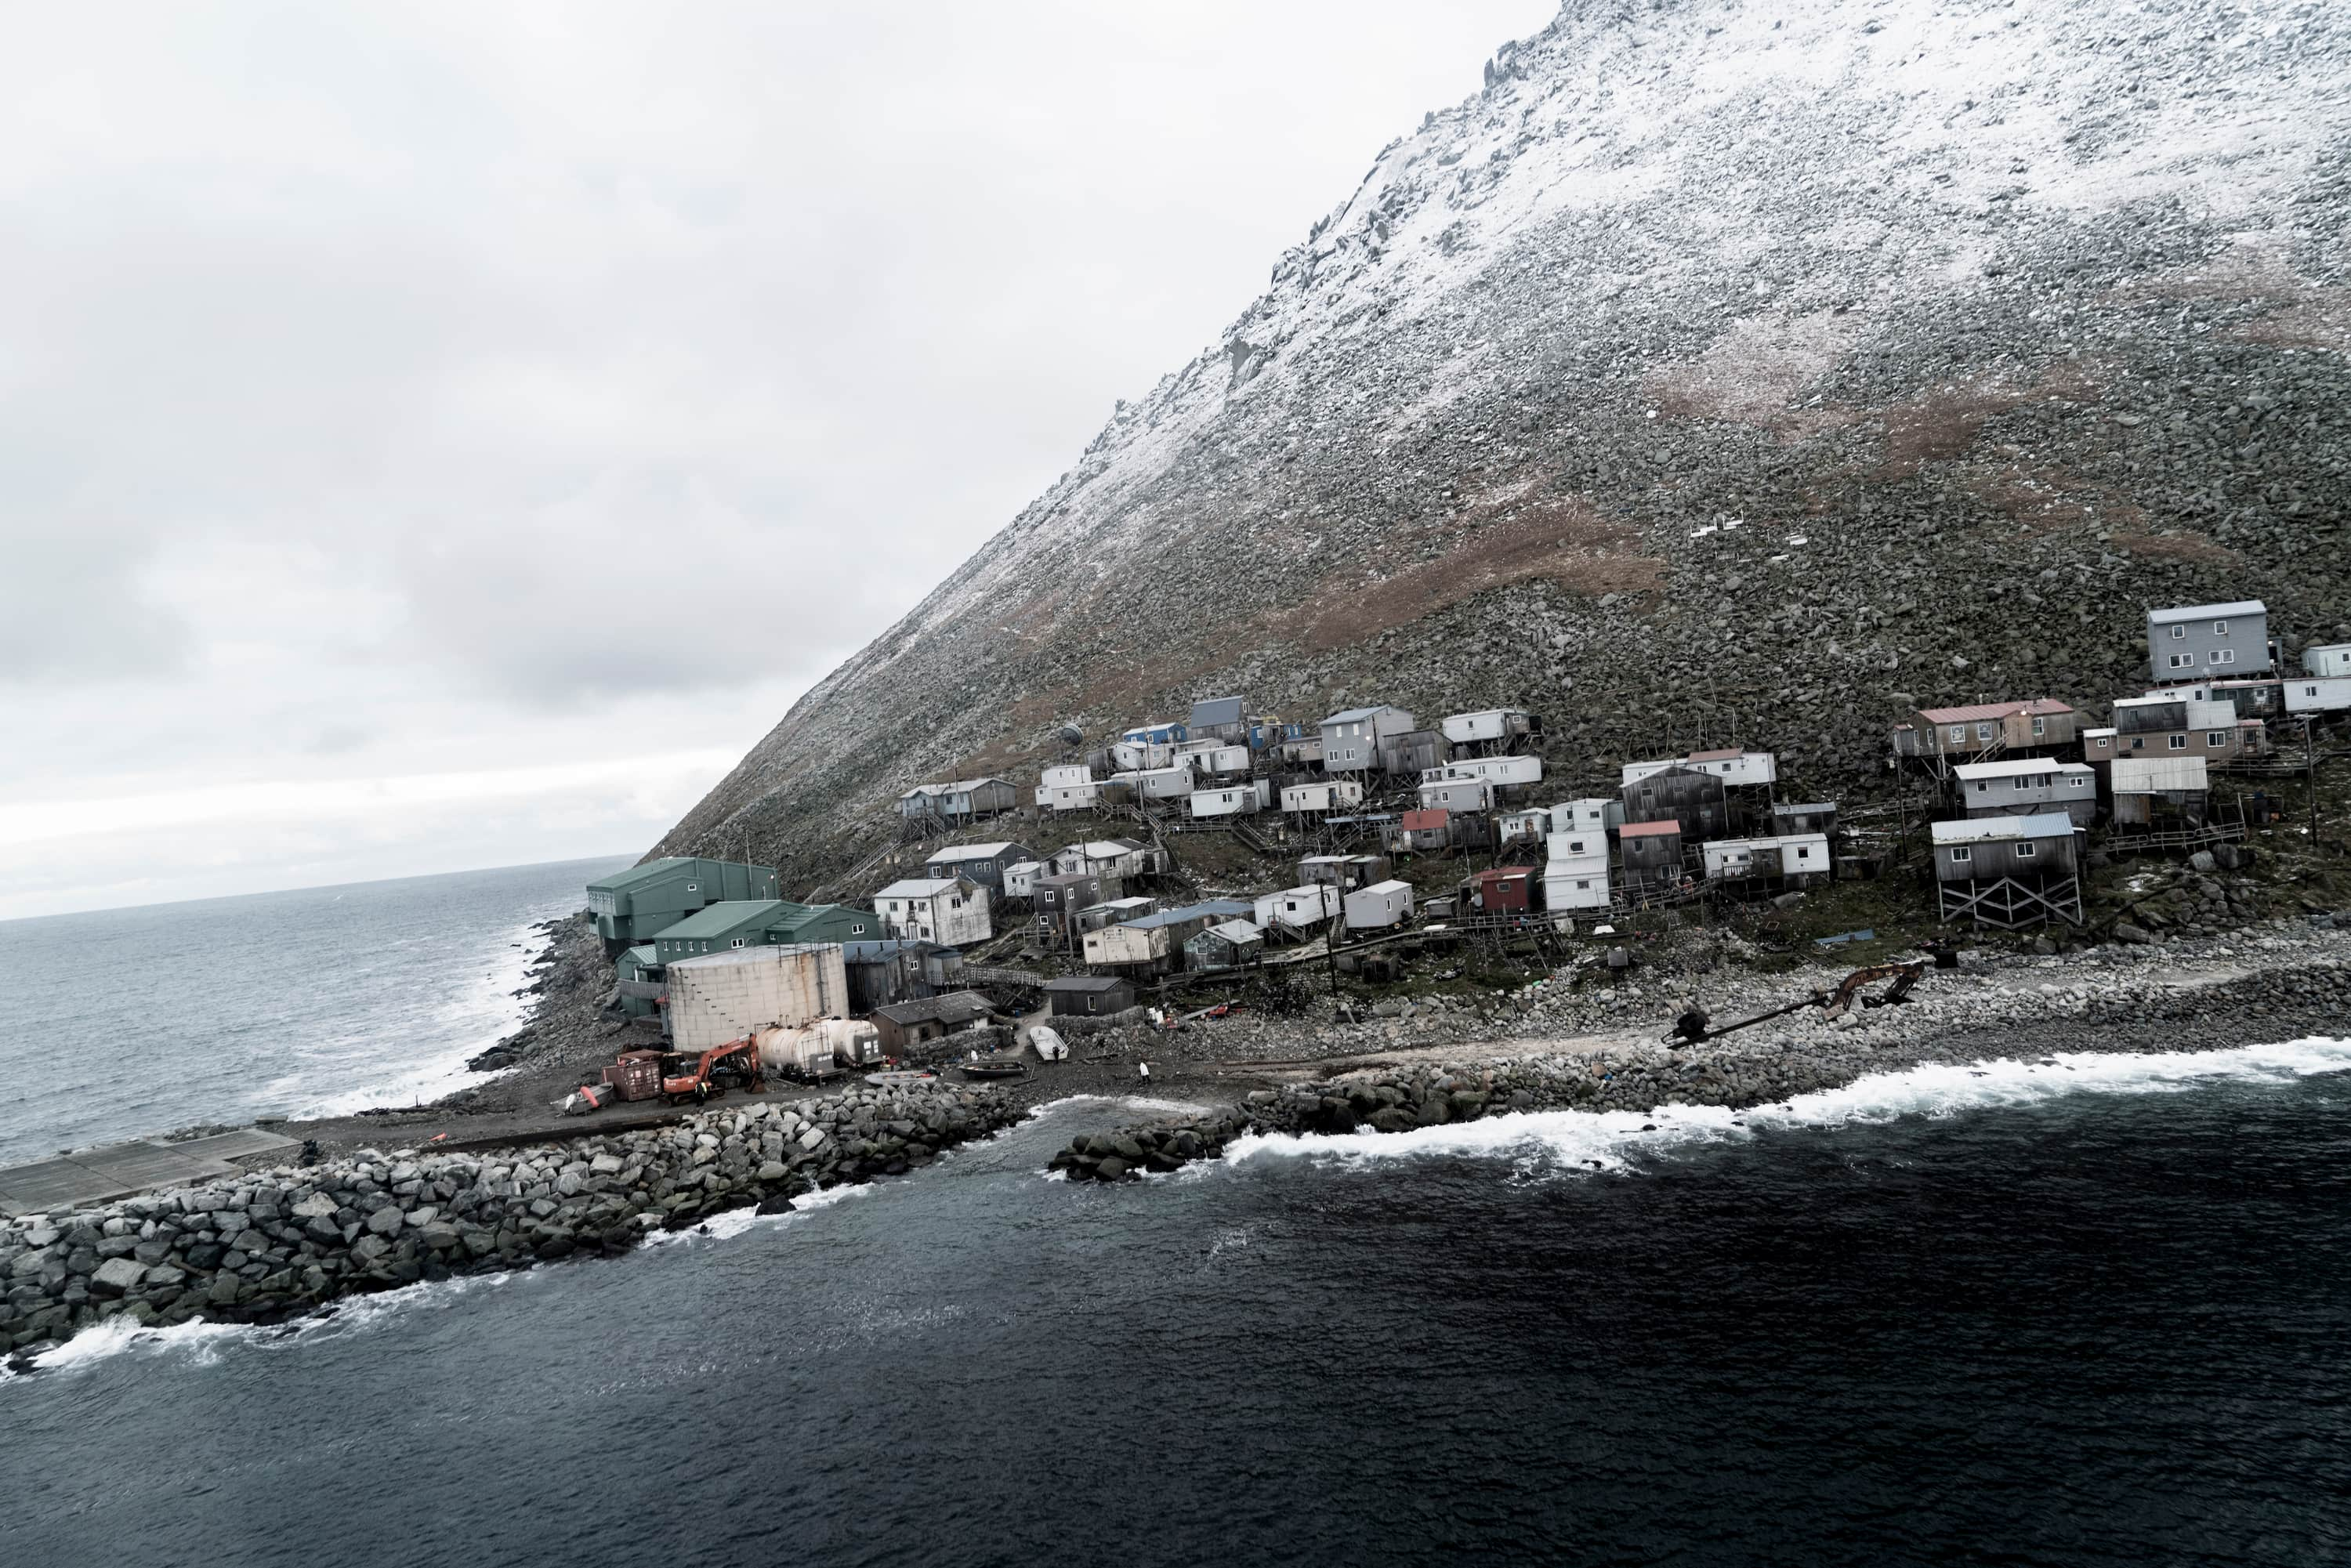 PS_diomede_printSelects-7